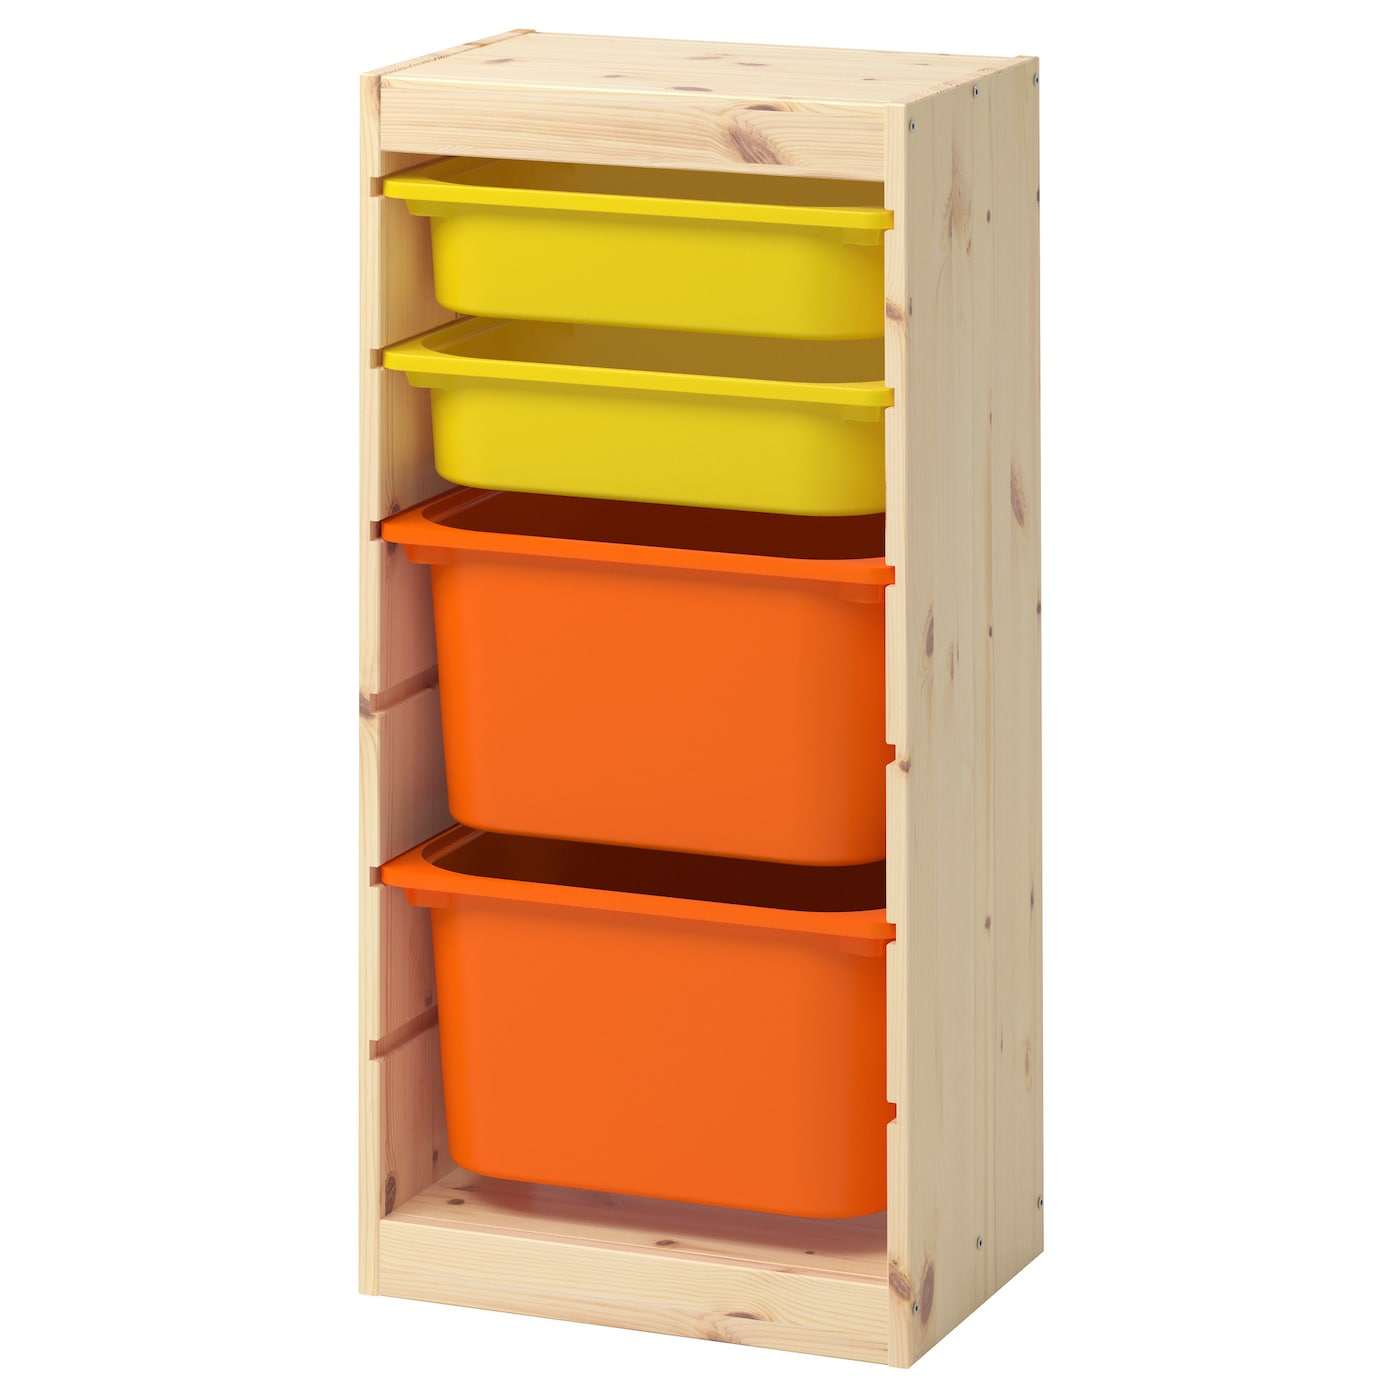 trofast storage combination with boxes light white stained pine orange yellow 44x30x91 cm ikea. Black Bedroom Furniture Sets. Home Design Ideas